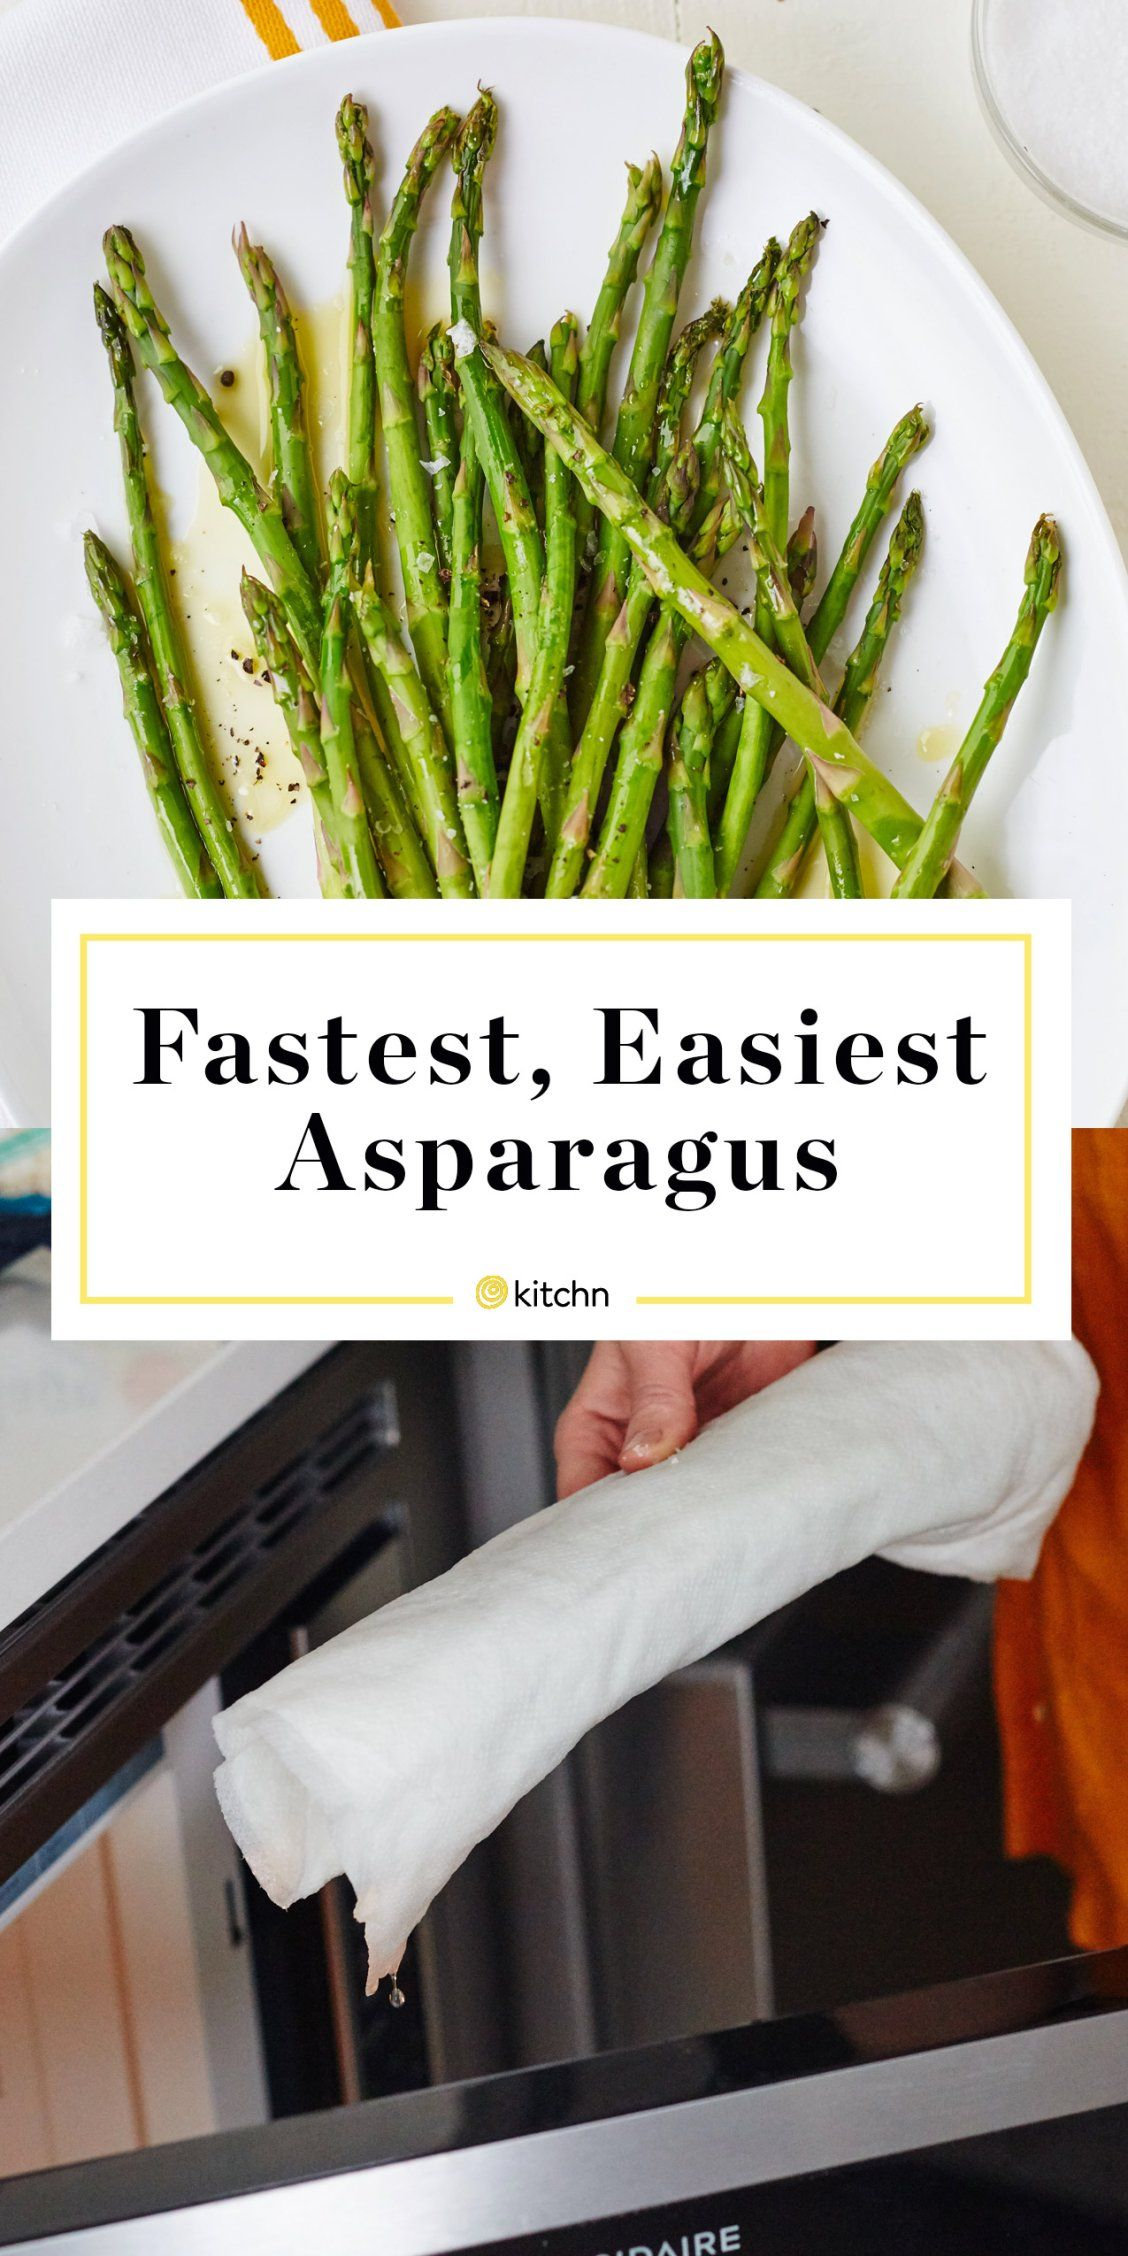 How To Steam Asparagus In The Microwave Recipe Quick Asparagus Recipe Ways To Cook Asparagus Cooking For Beginners